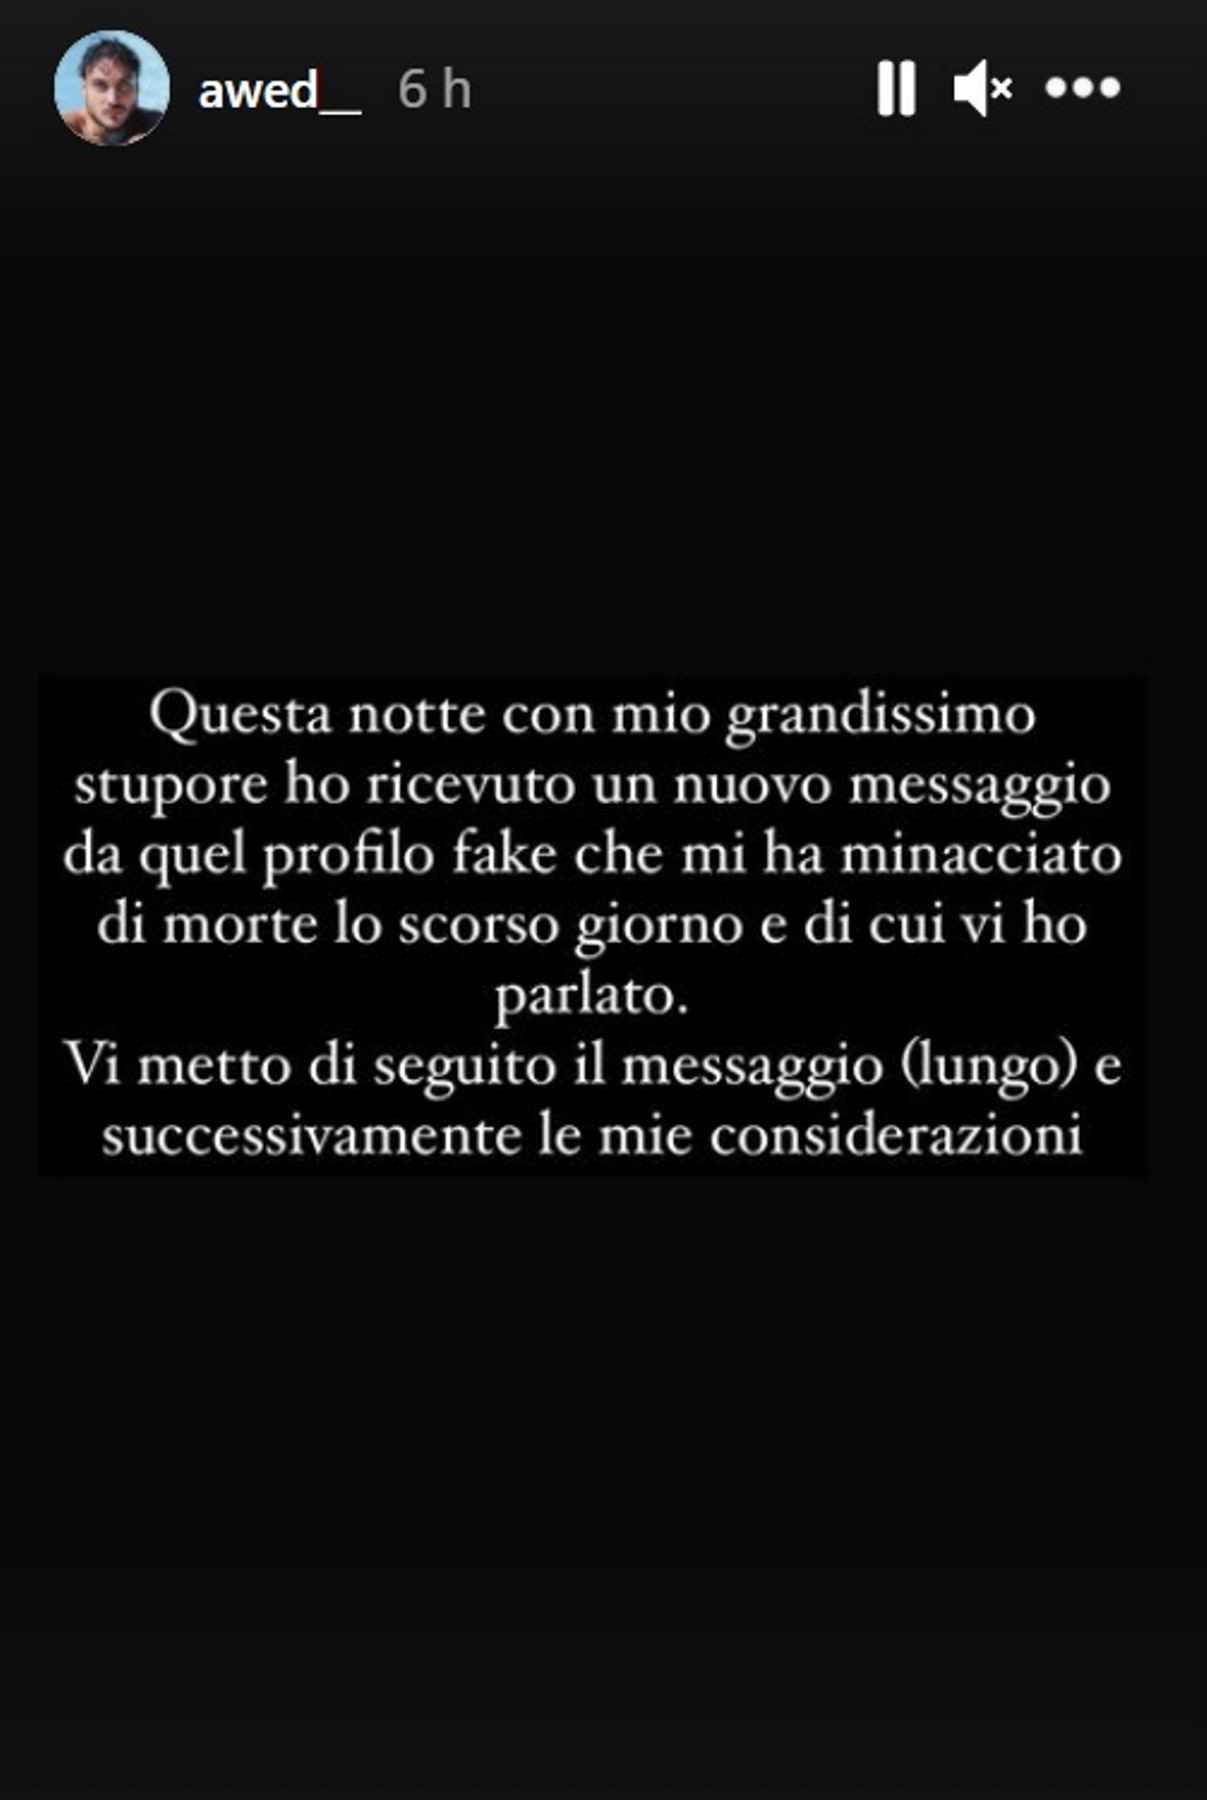 awed minacce messaggio autrice